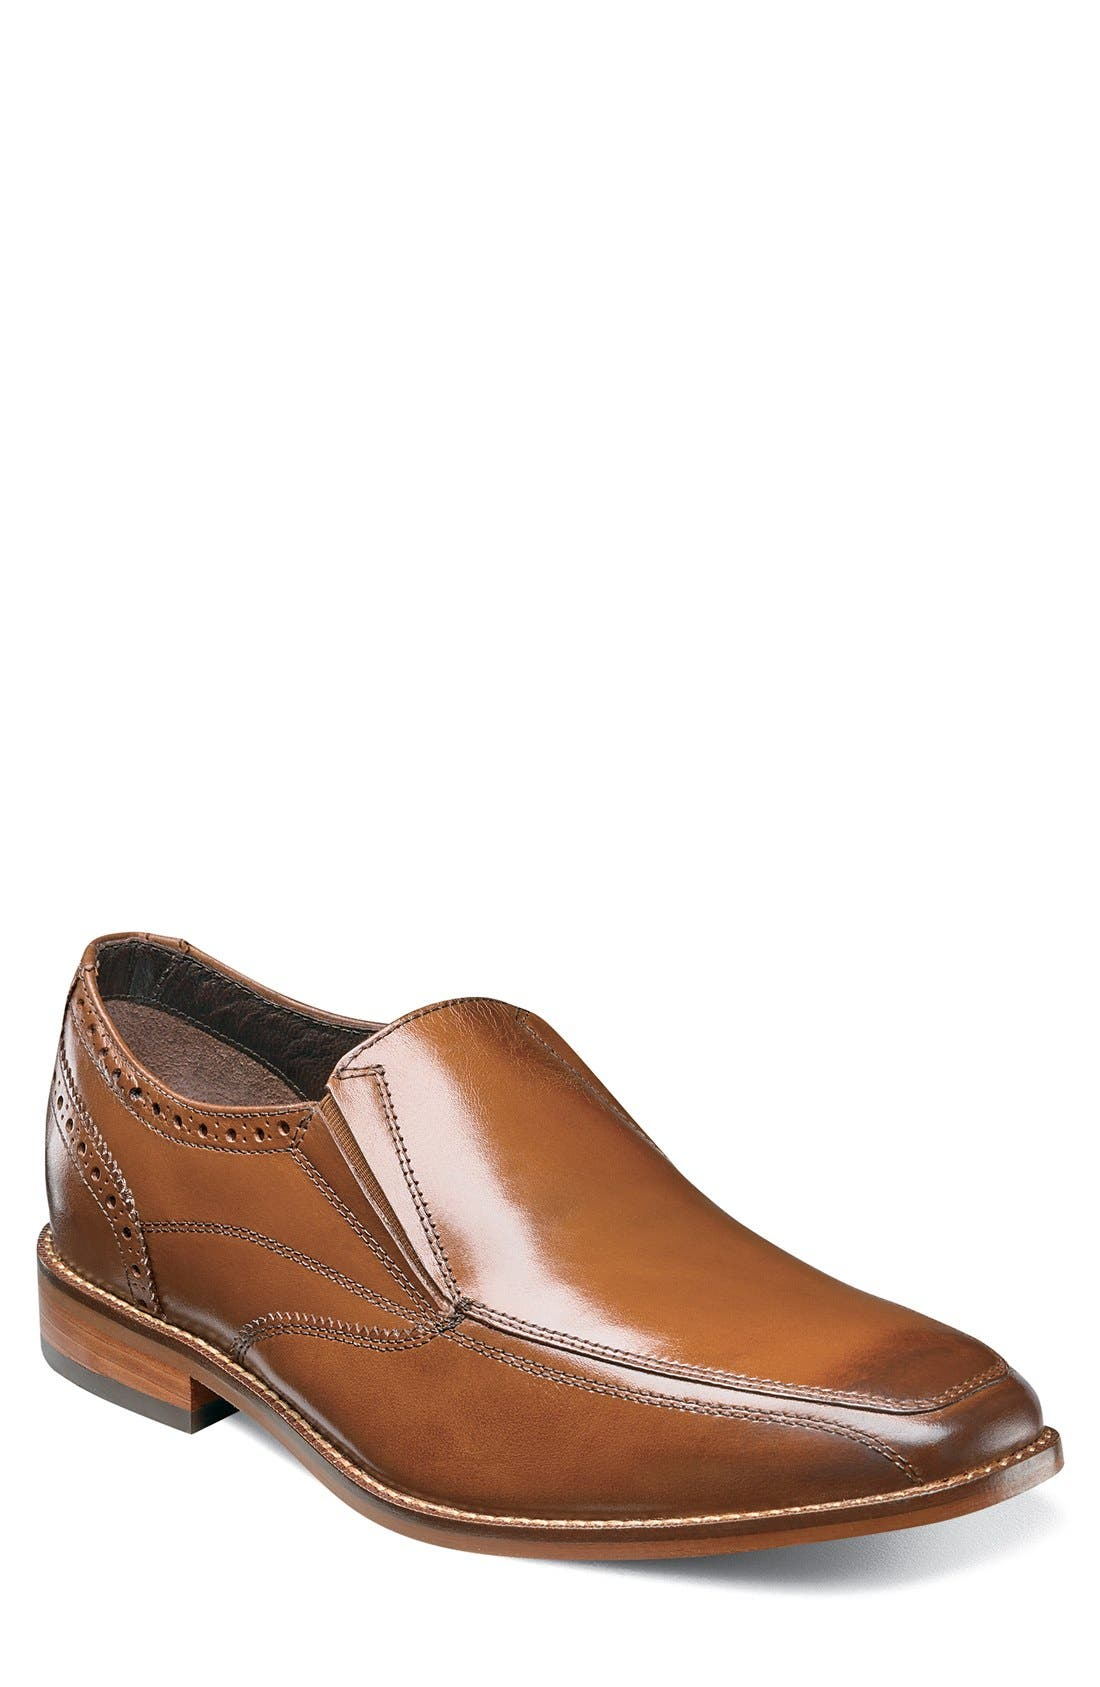 Main Image - Florsheim 'Castellano' Venetian Loafer (Men)